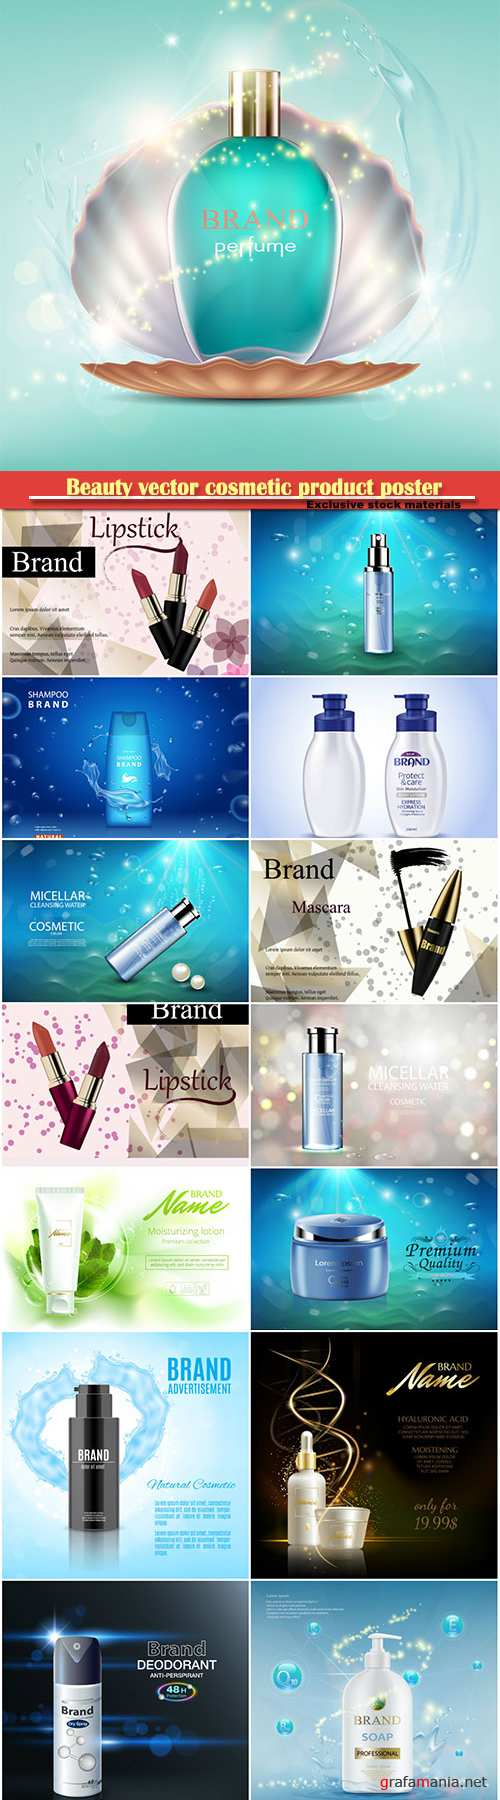 Beauty vector cosmetic product poster # 30